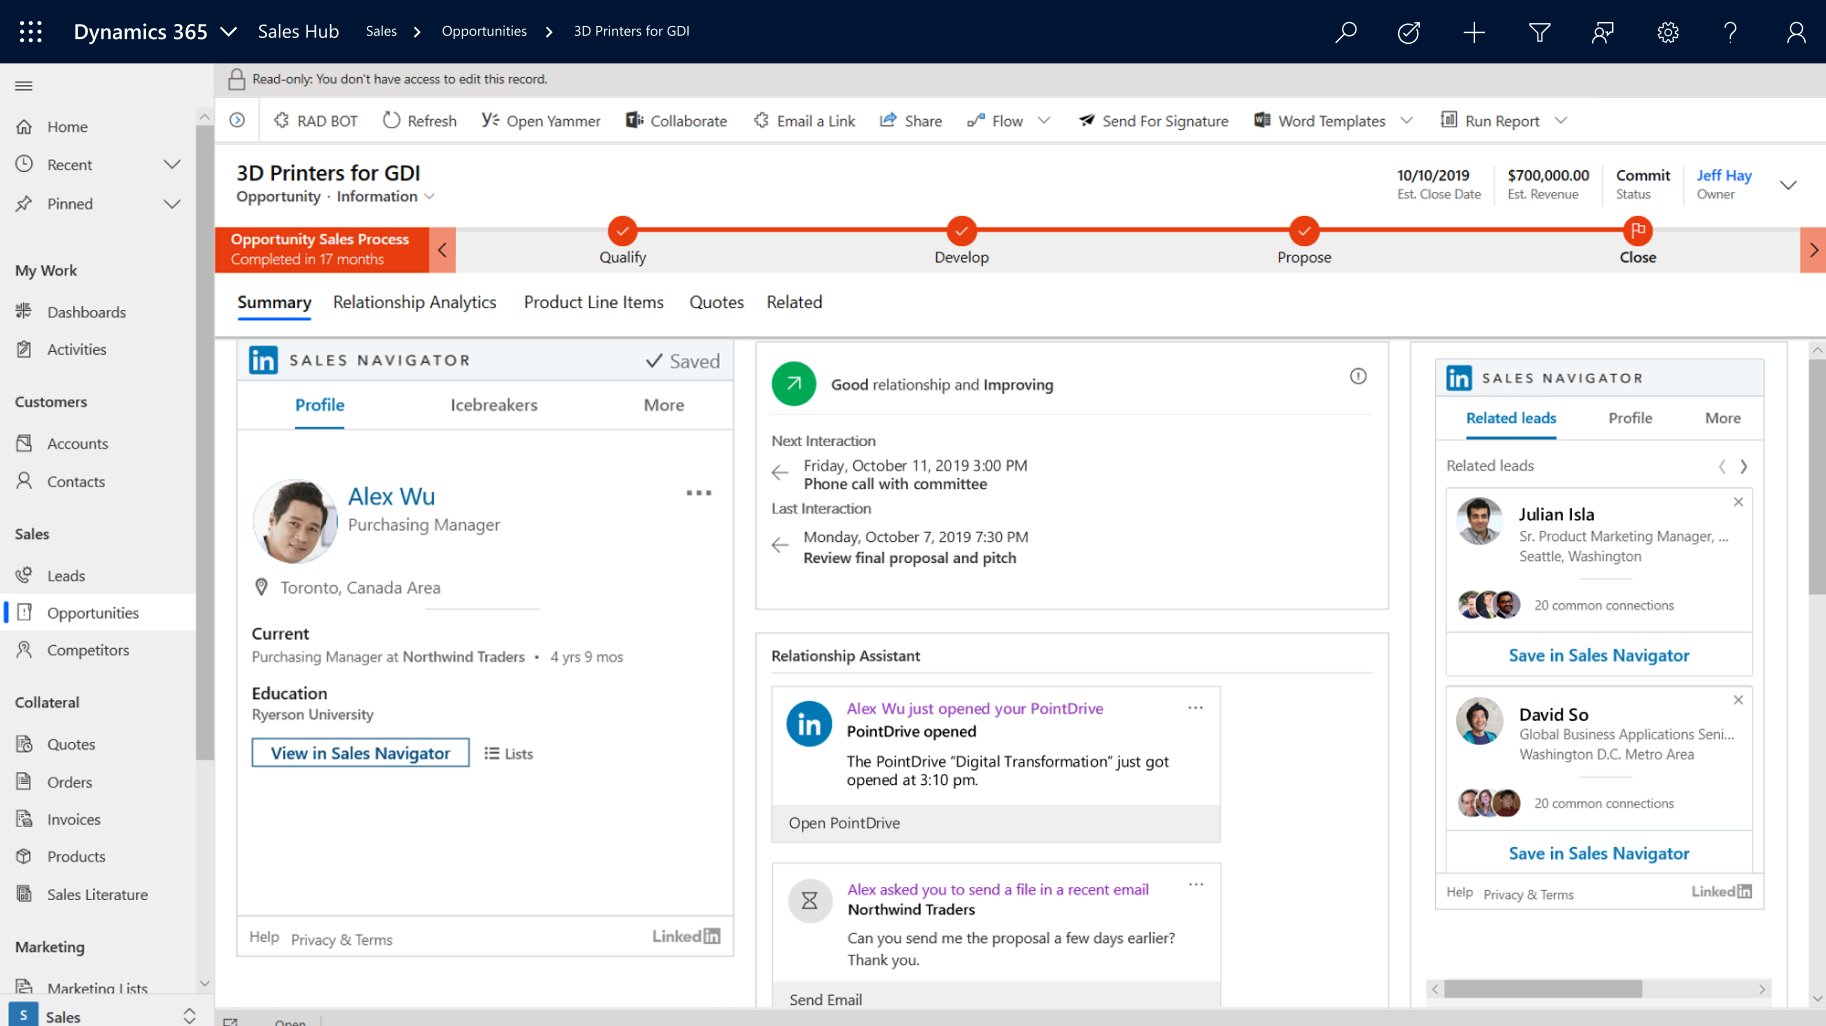 Integrate LinkedIn solutions in Dynamics 365